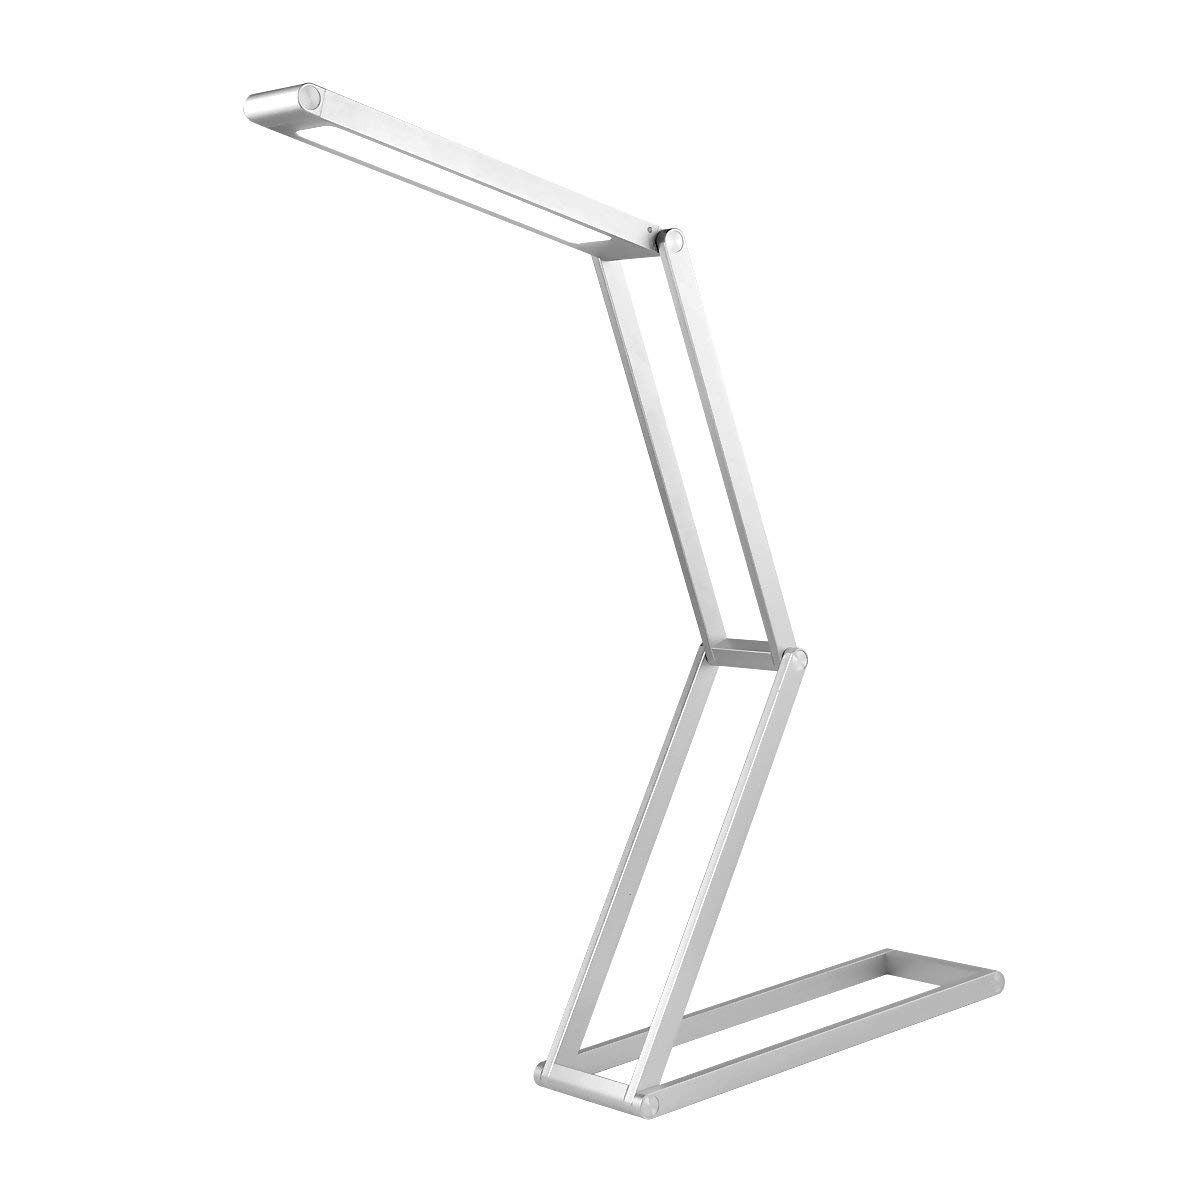 LED Desk Lamp, Toplife Dimmable Eye-Caring Table Lamp, Foldable USB Rechargable Reading Light for Kids&Adults Home Studying Office Working and Camping(Silver)